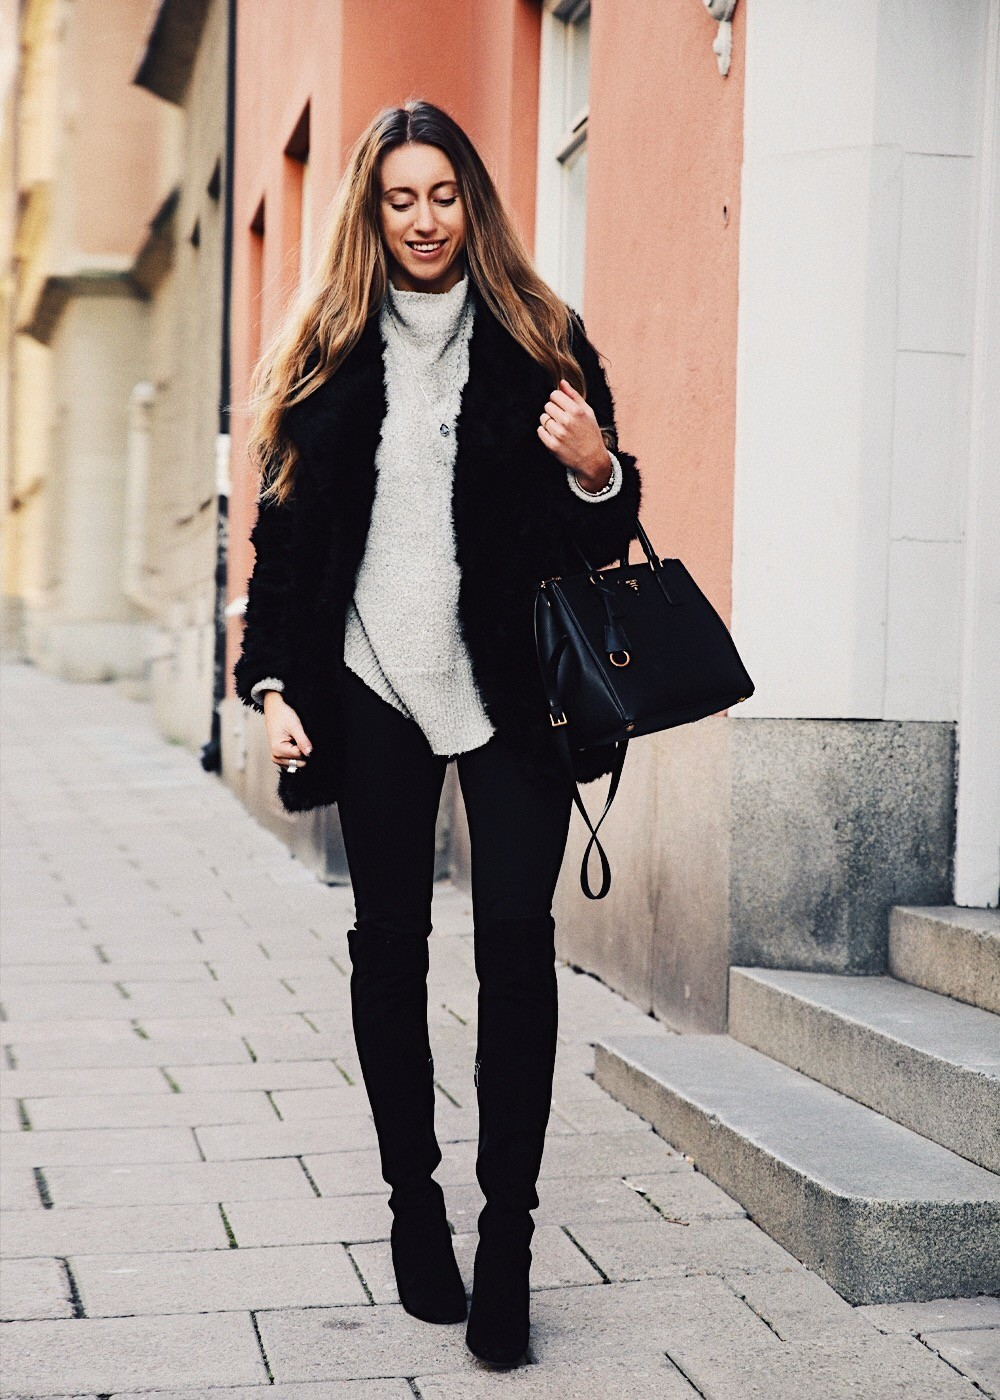 mammablogg+mode+outfit